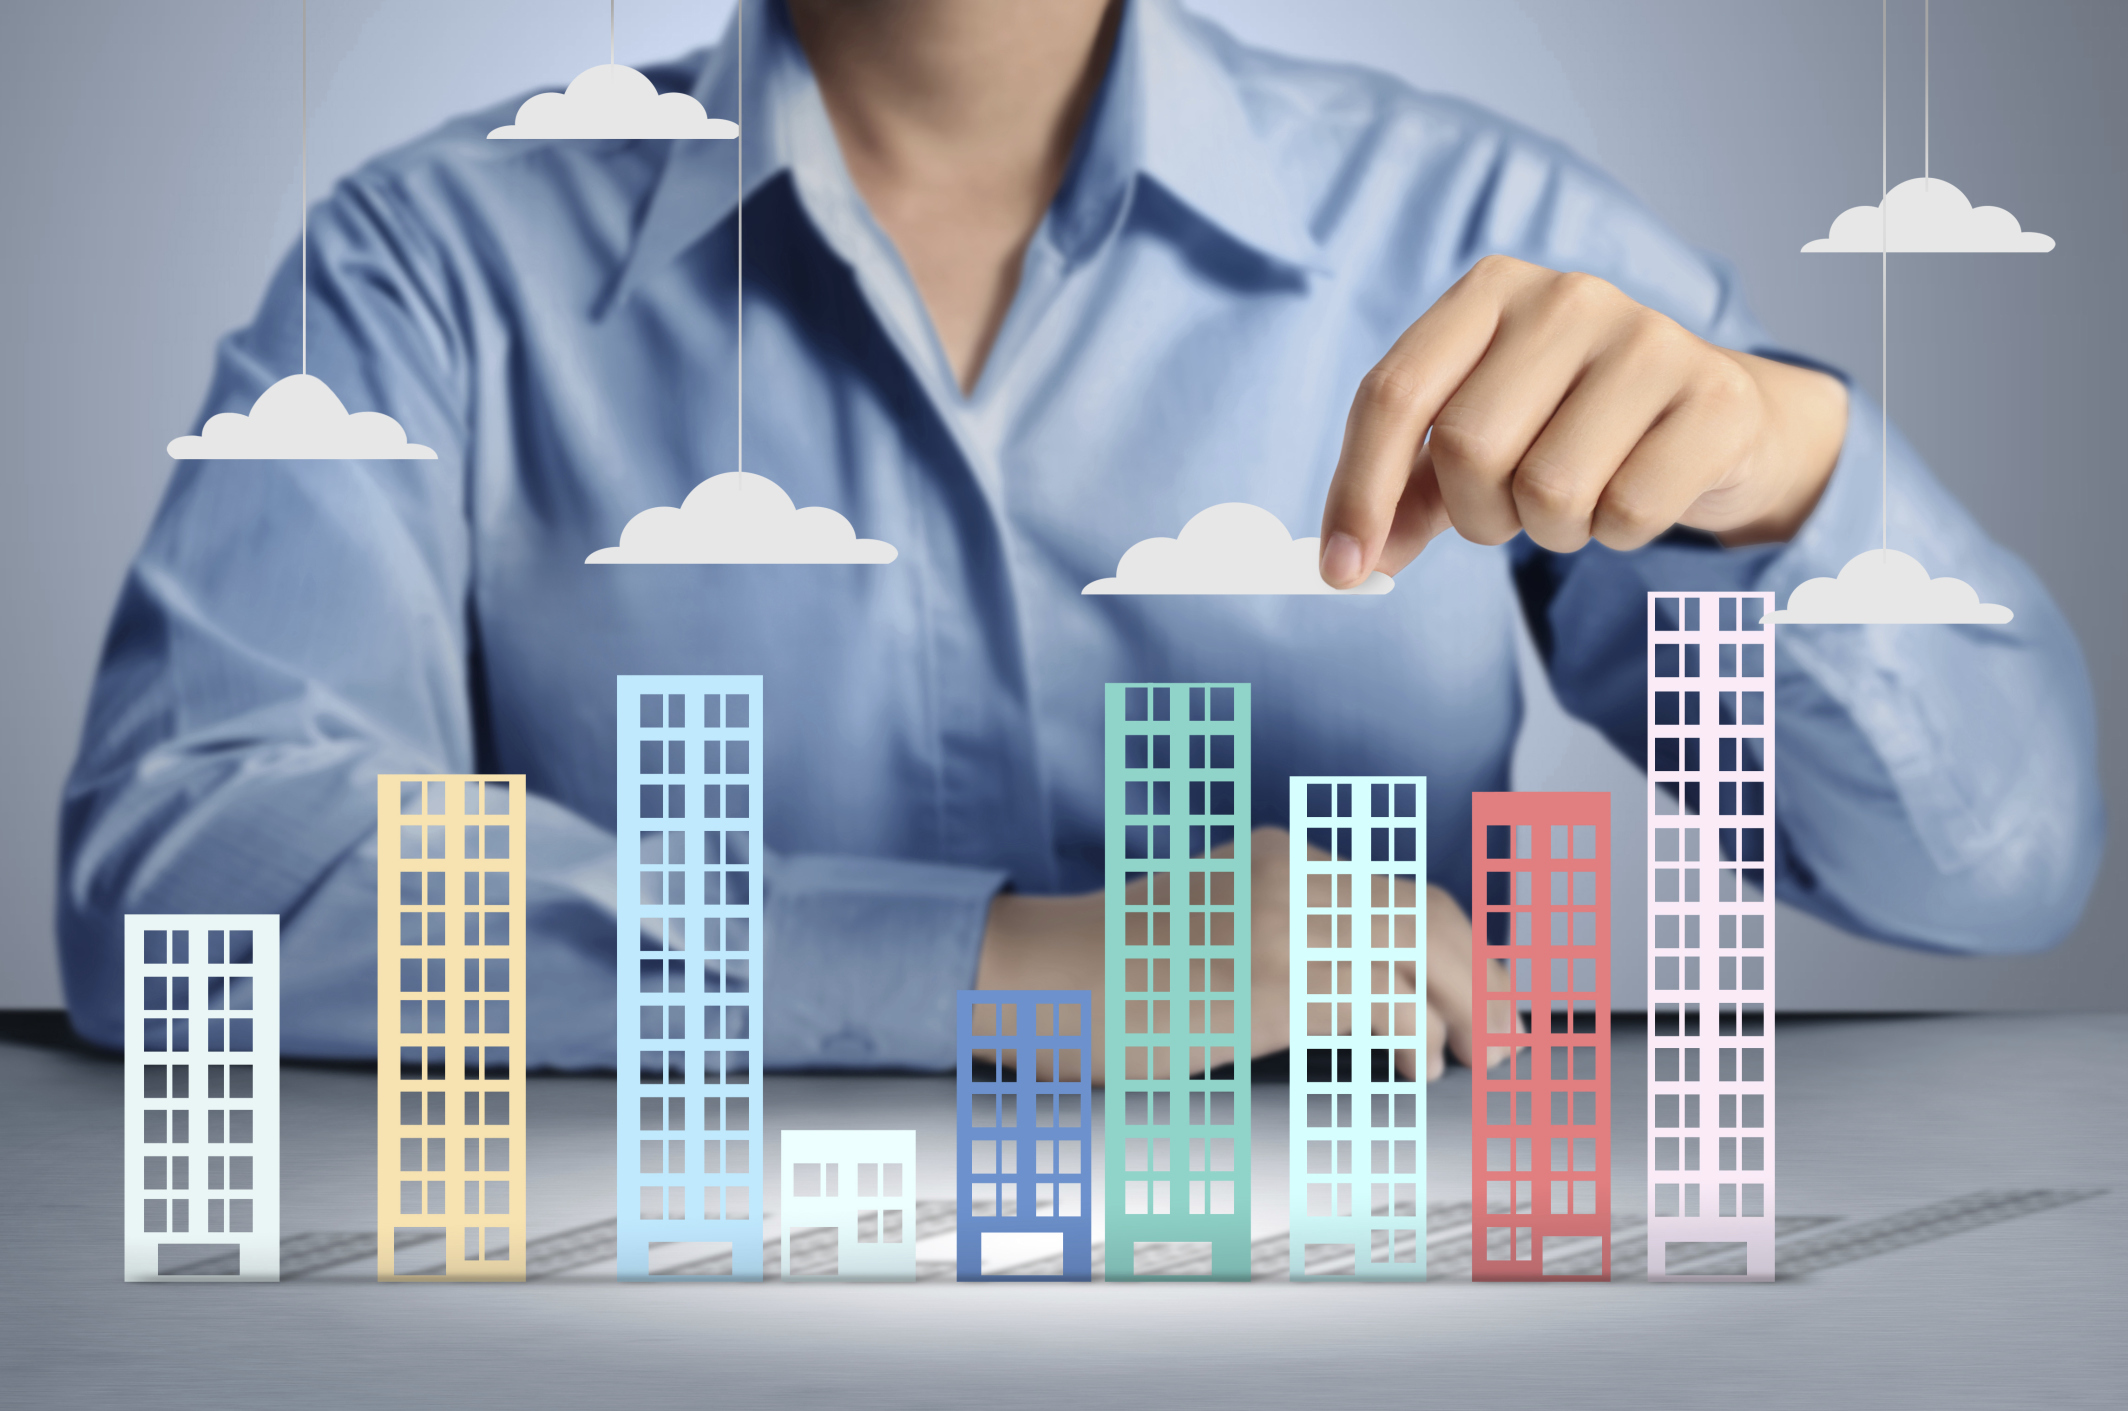 Propsocial property property investment reality commercial building